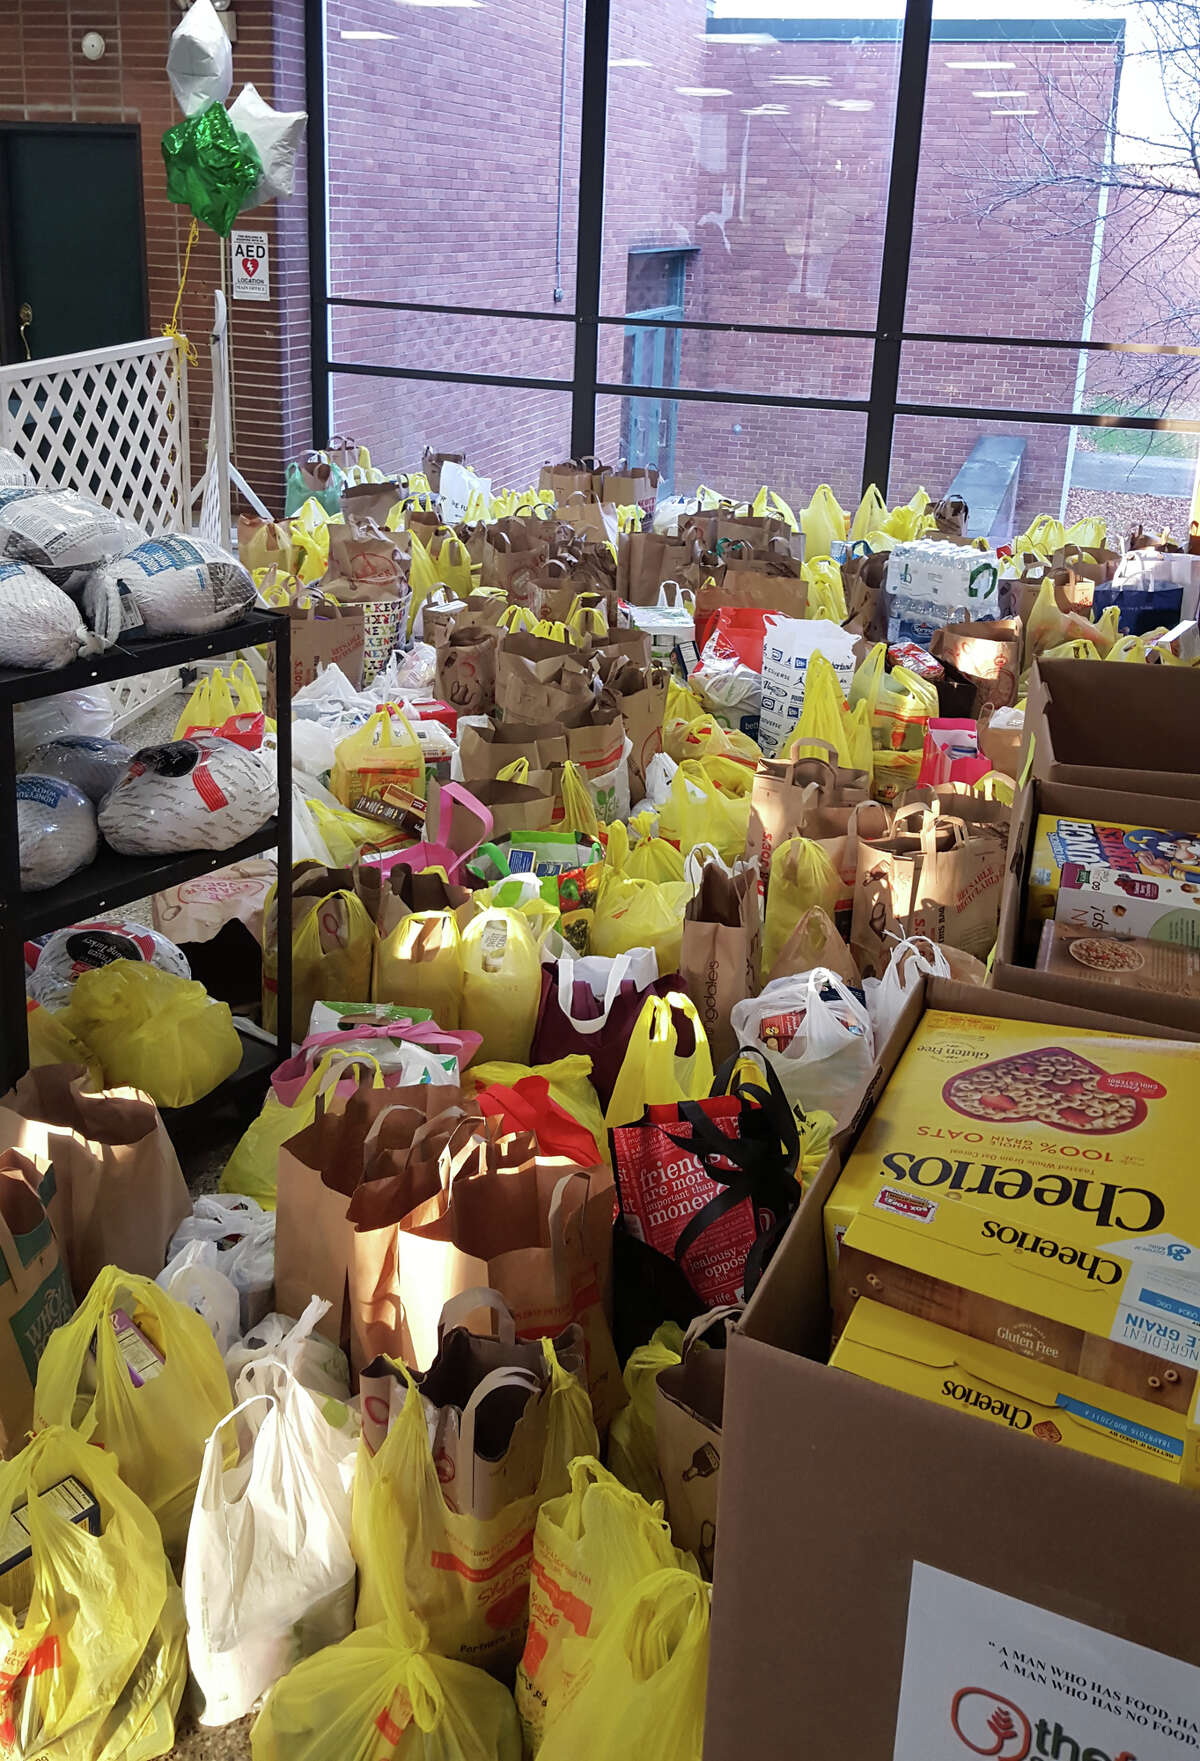 Trinity Catholic High School donated more than two tons of food to The Food Bank of Lower Fairfield County last week.